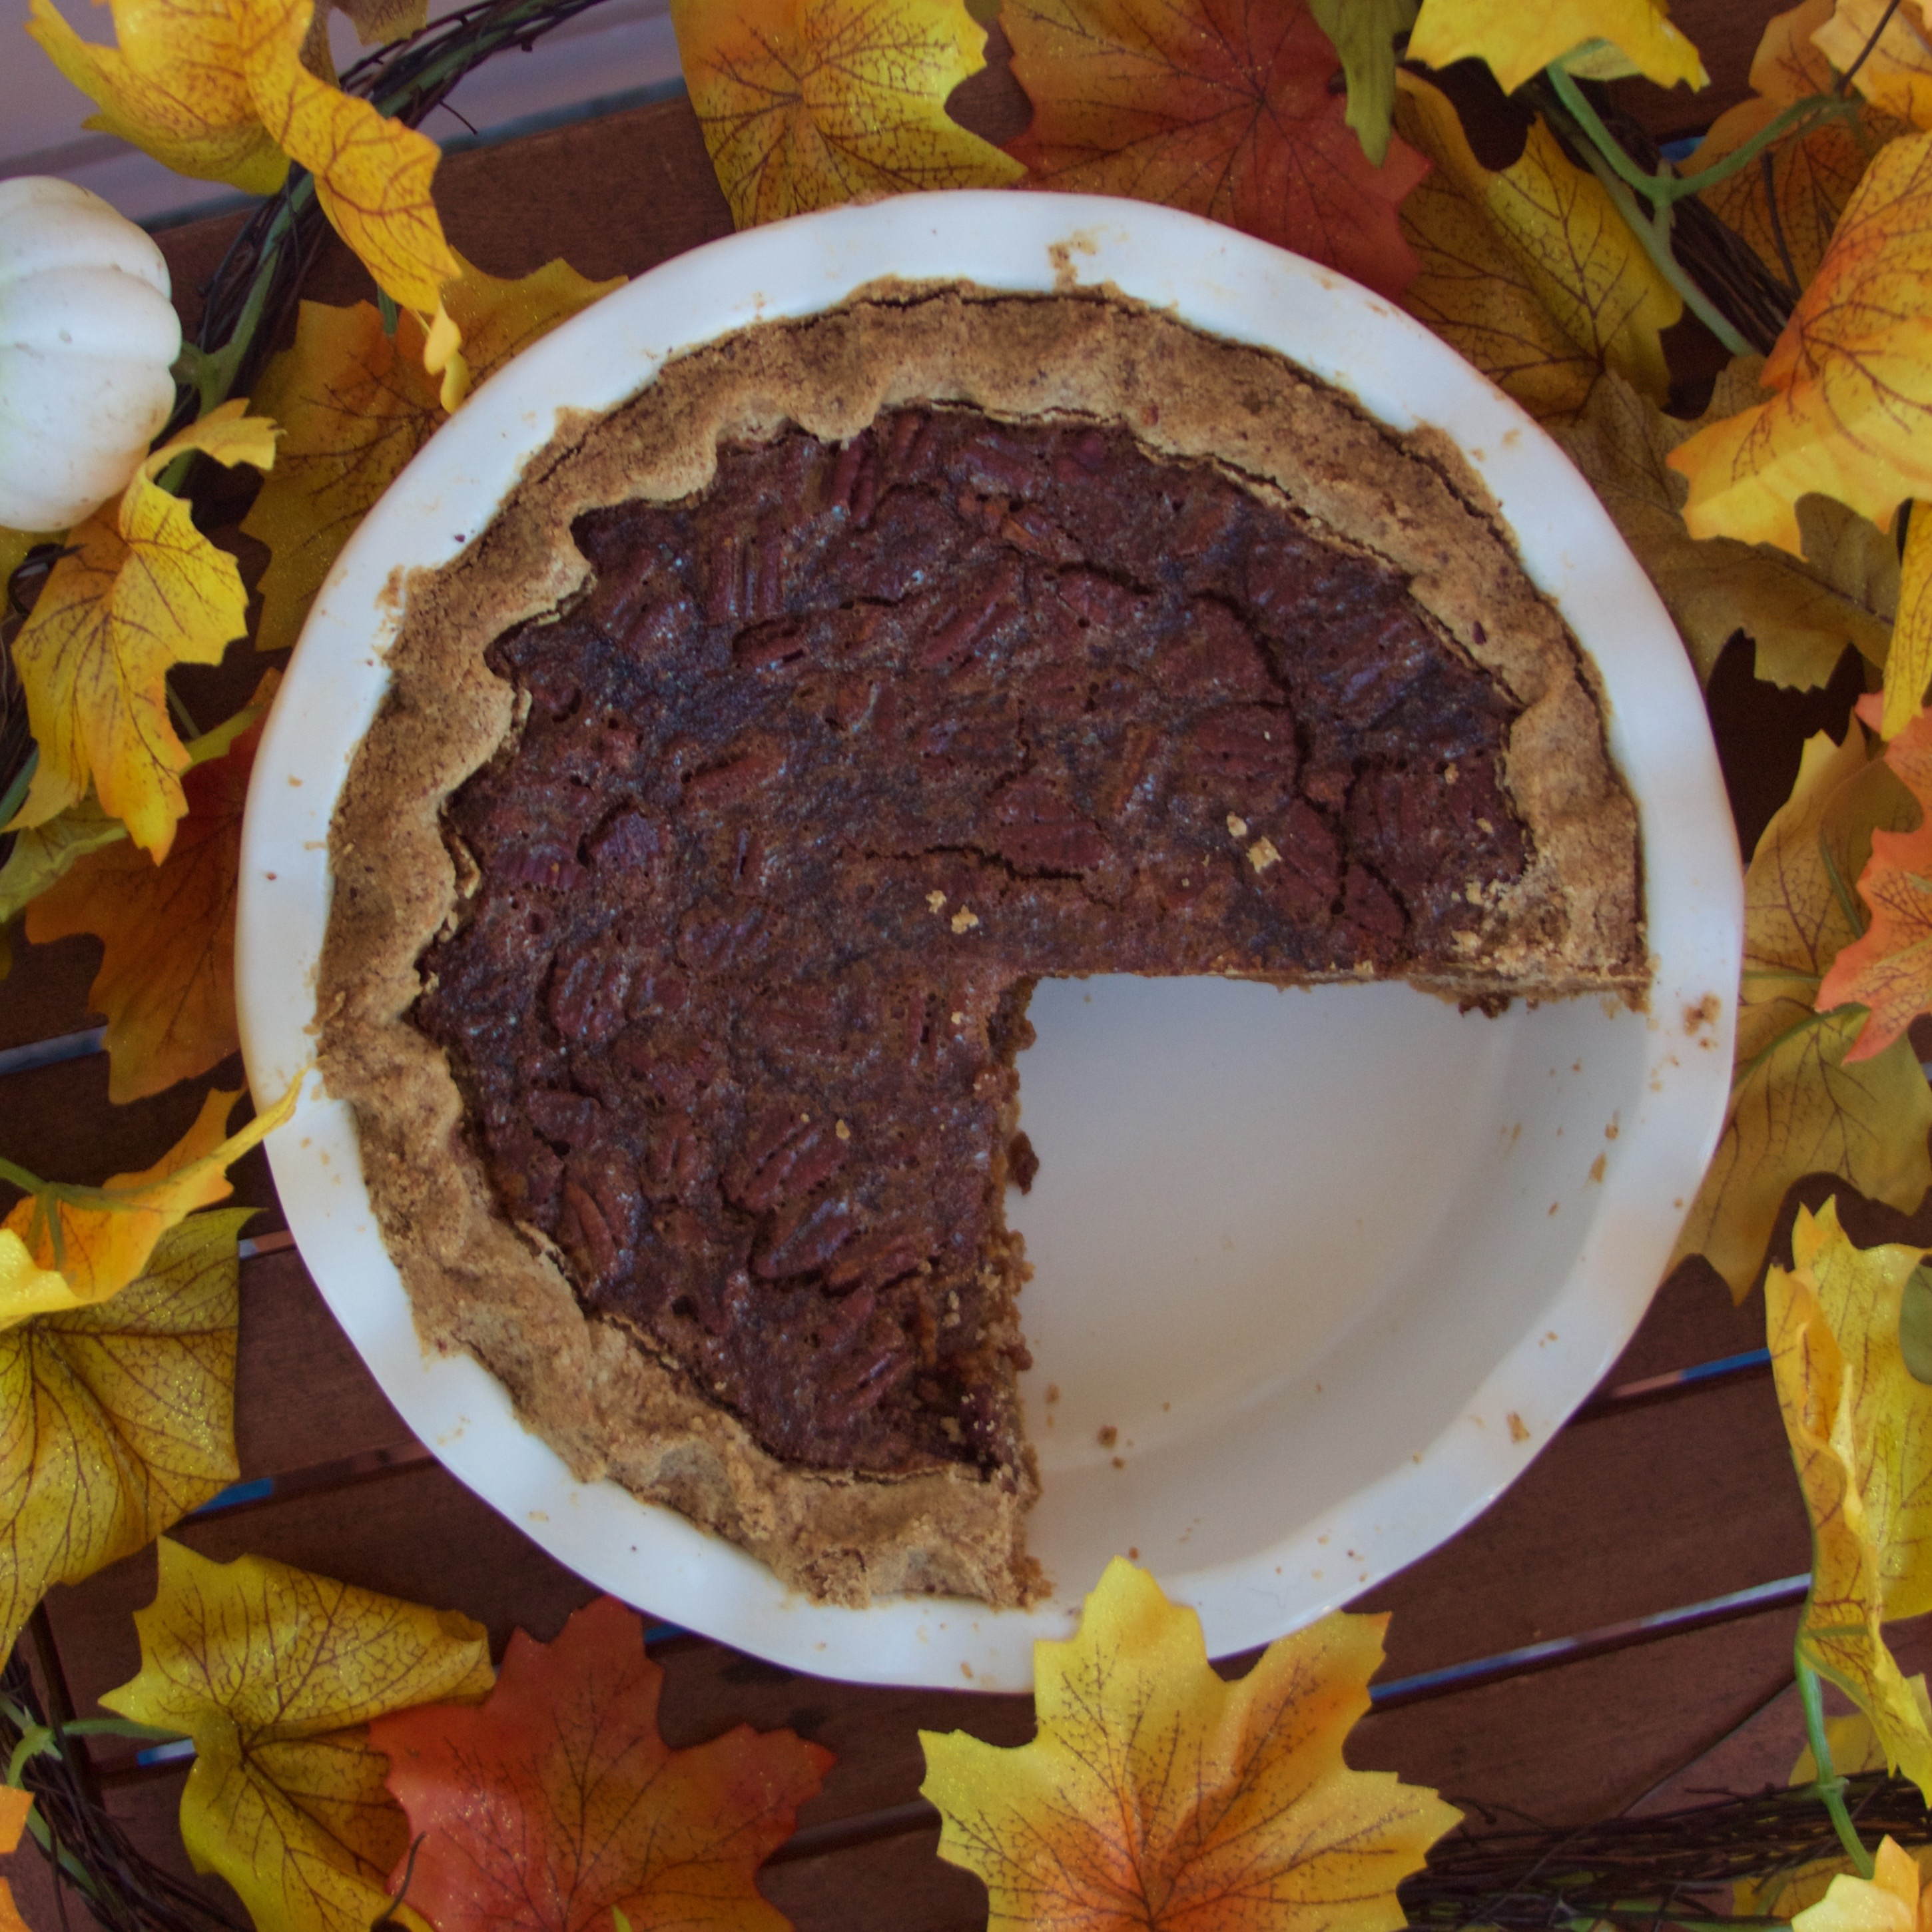 Brandied Pumpkin and Pecan Pie with Pecan Shortbread Crust